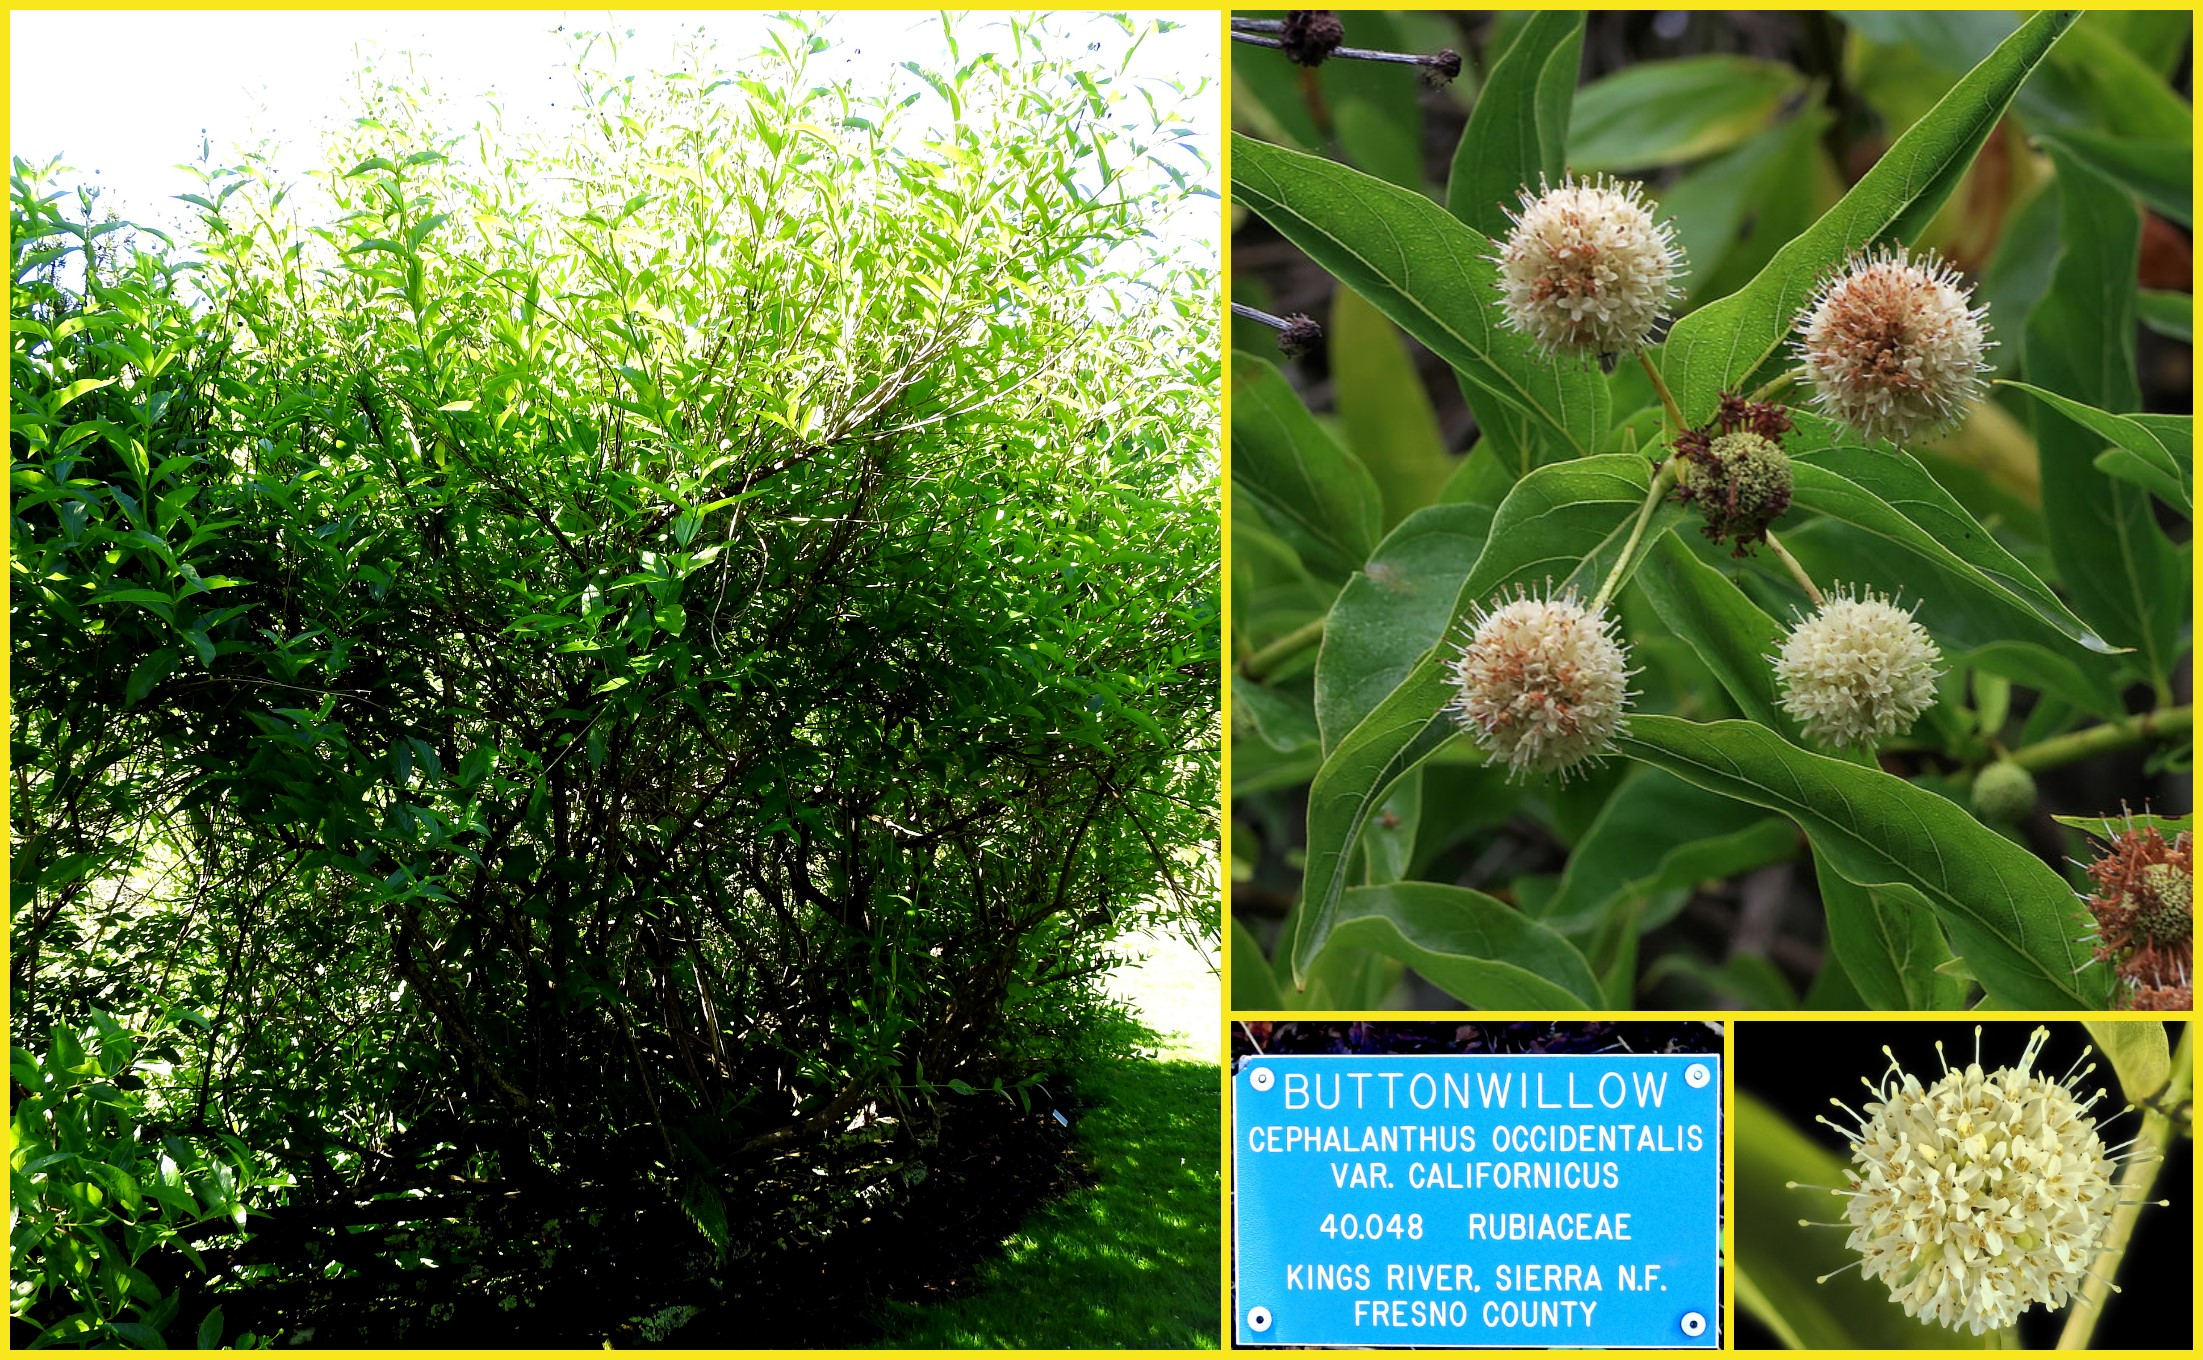 Cephalanthus occidentalis (Buttonwillow)